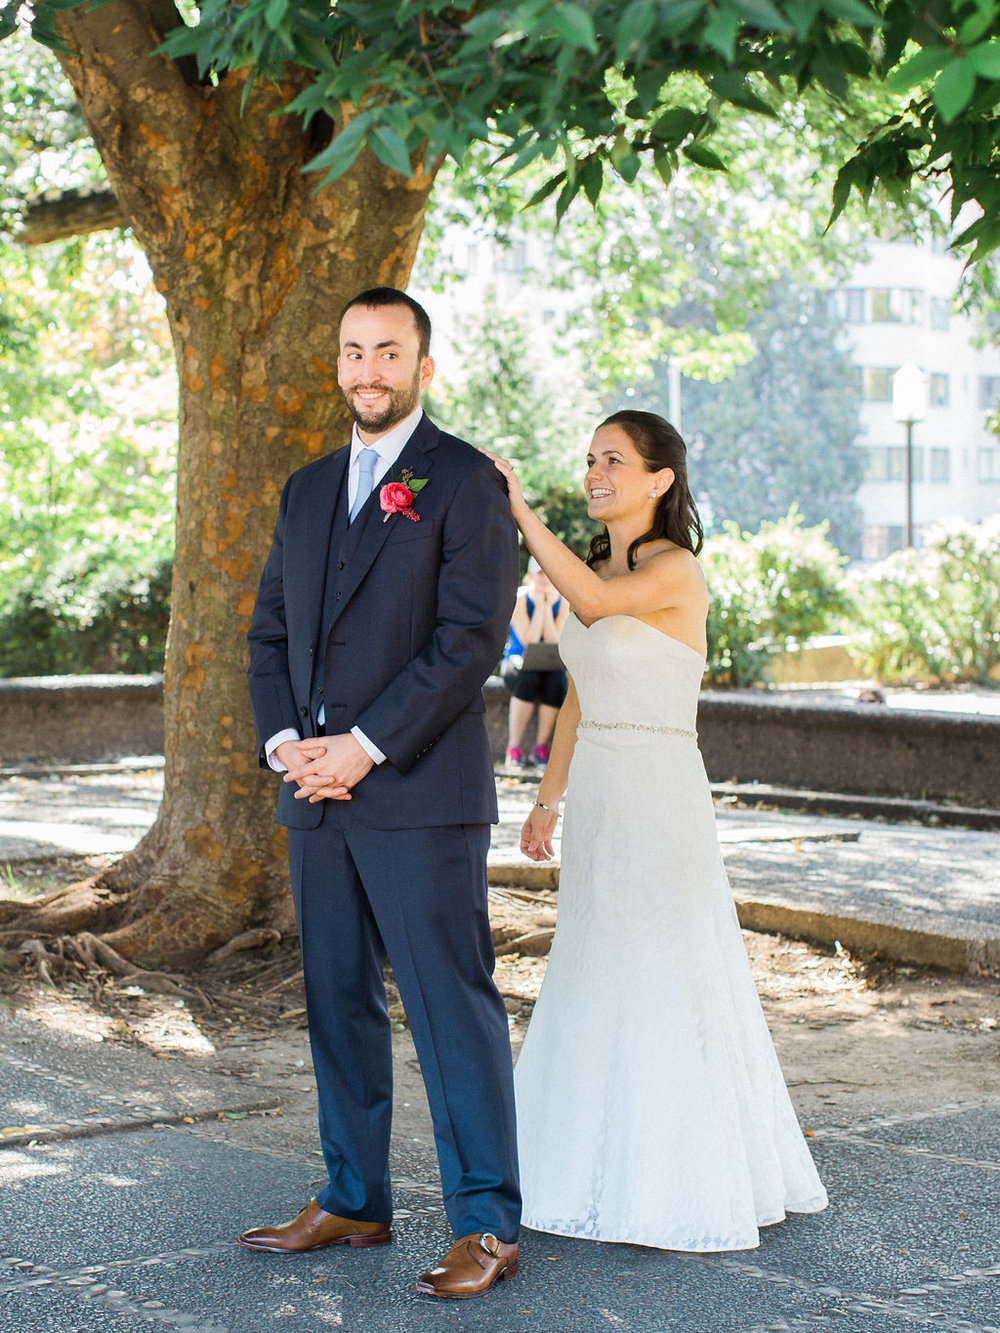 Longview Gallery Wedding Washington DC Lissa Ryan Photography Sincerely Pete Events First Look